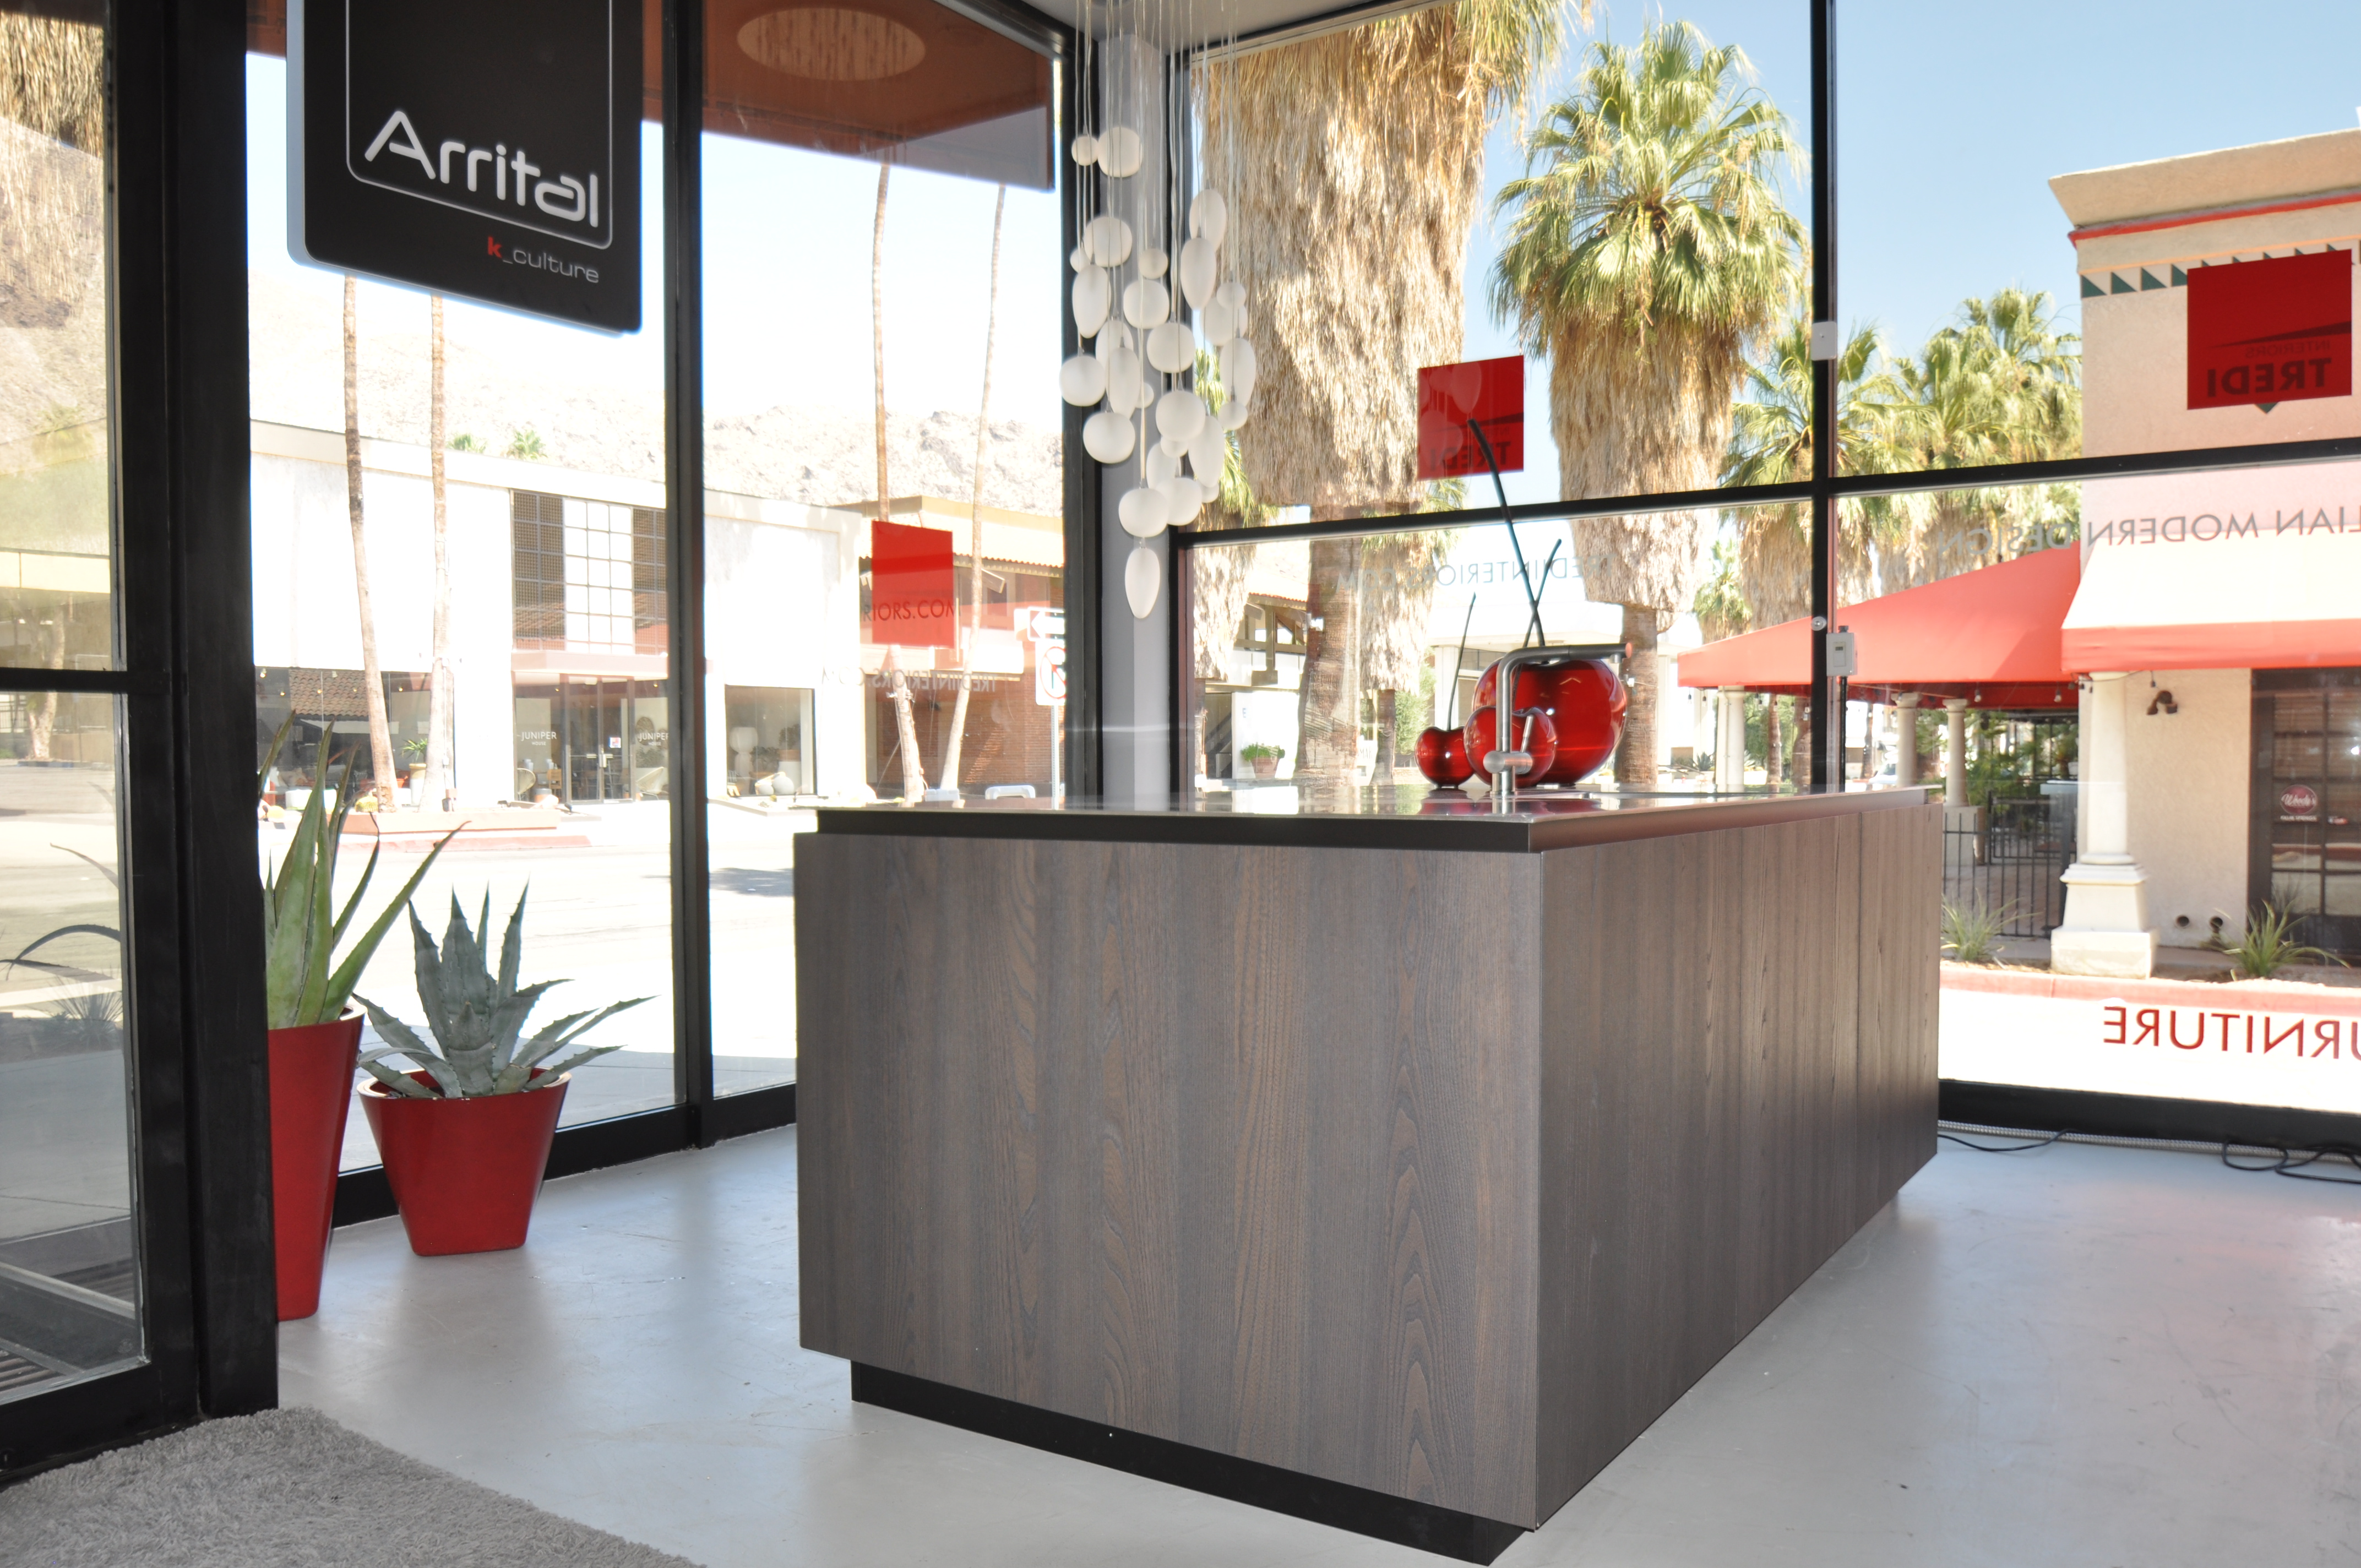 Arrital kitchens showroom in Palm Springs